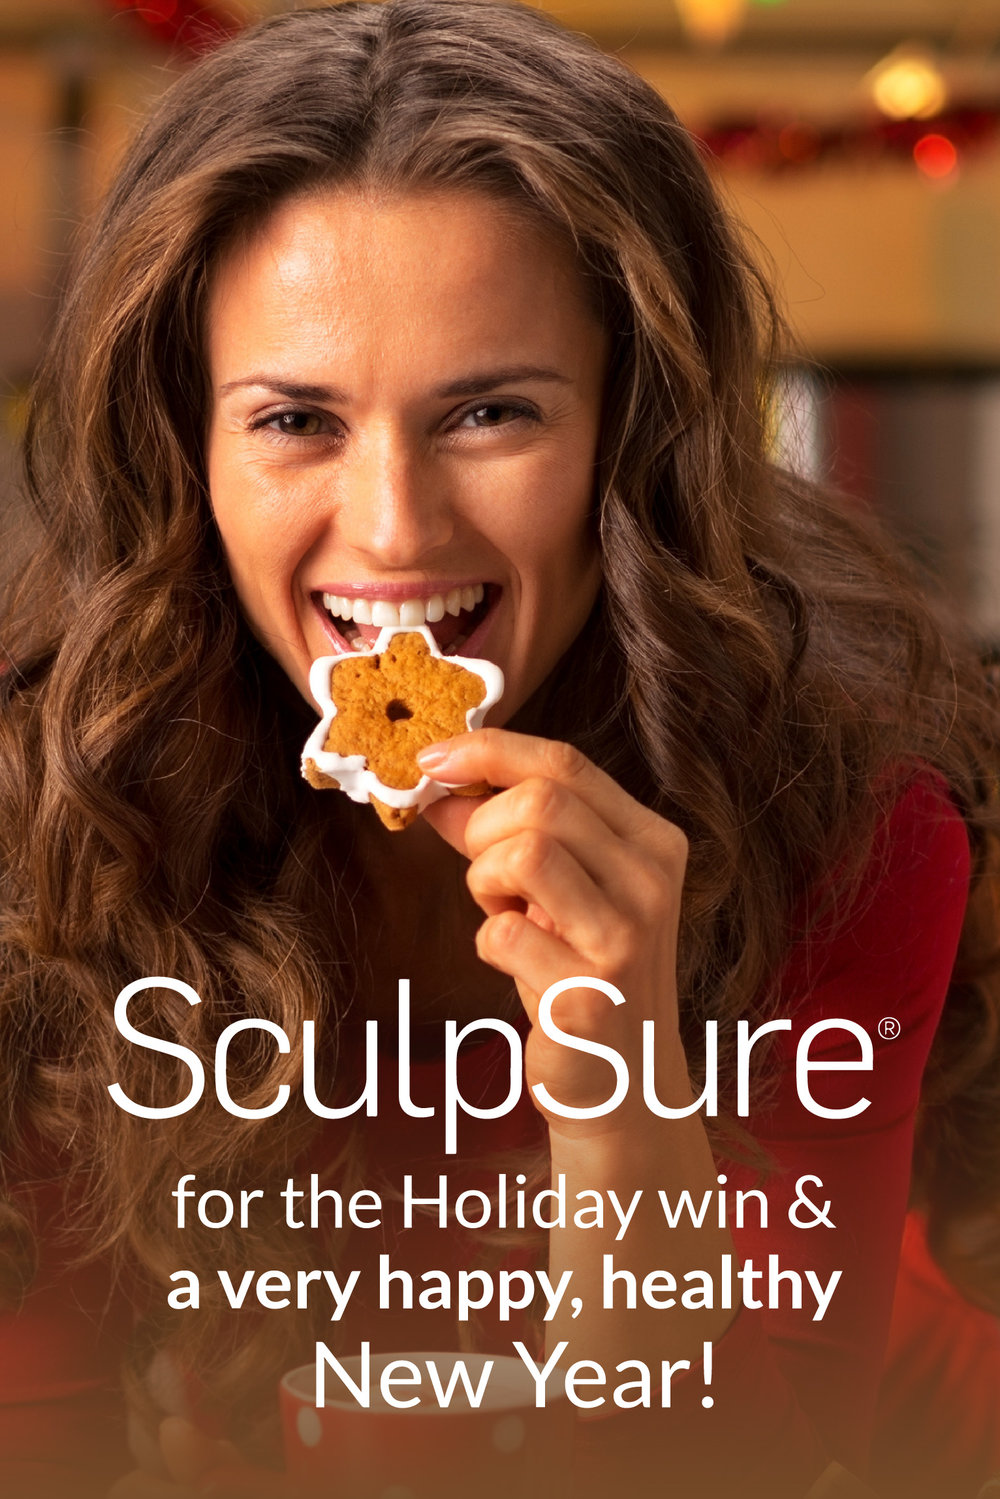 Dieting during the holidays can be hard but SculpSure is here to help. Hill Country Vitality is. a provider of SculpSure for the San Antonio and Stone Oak Area.